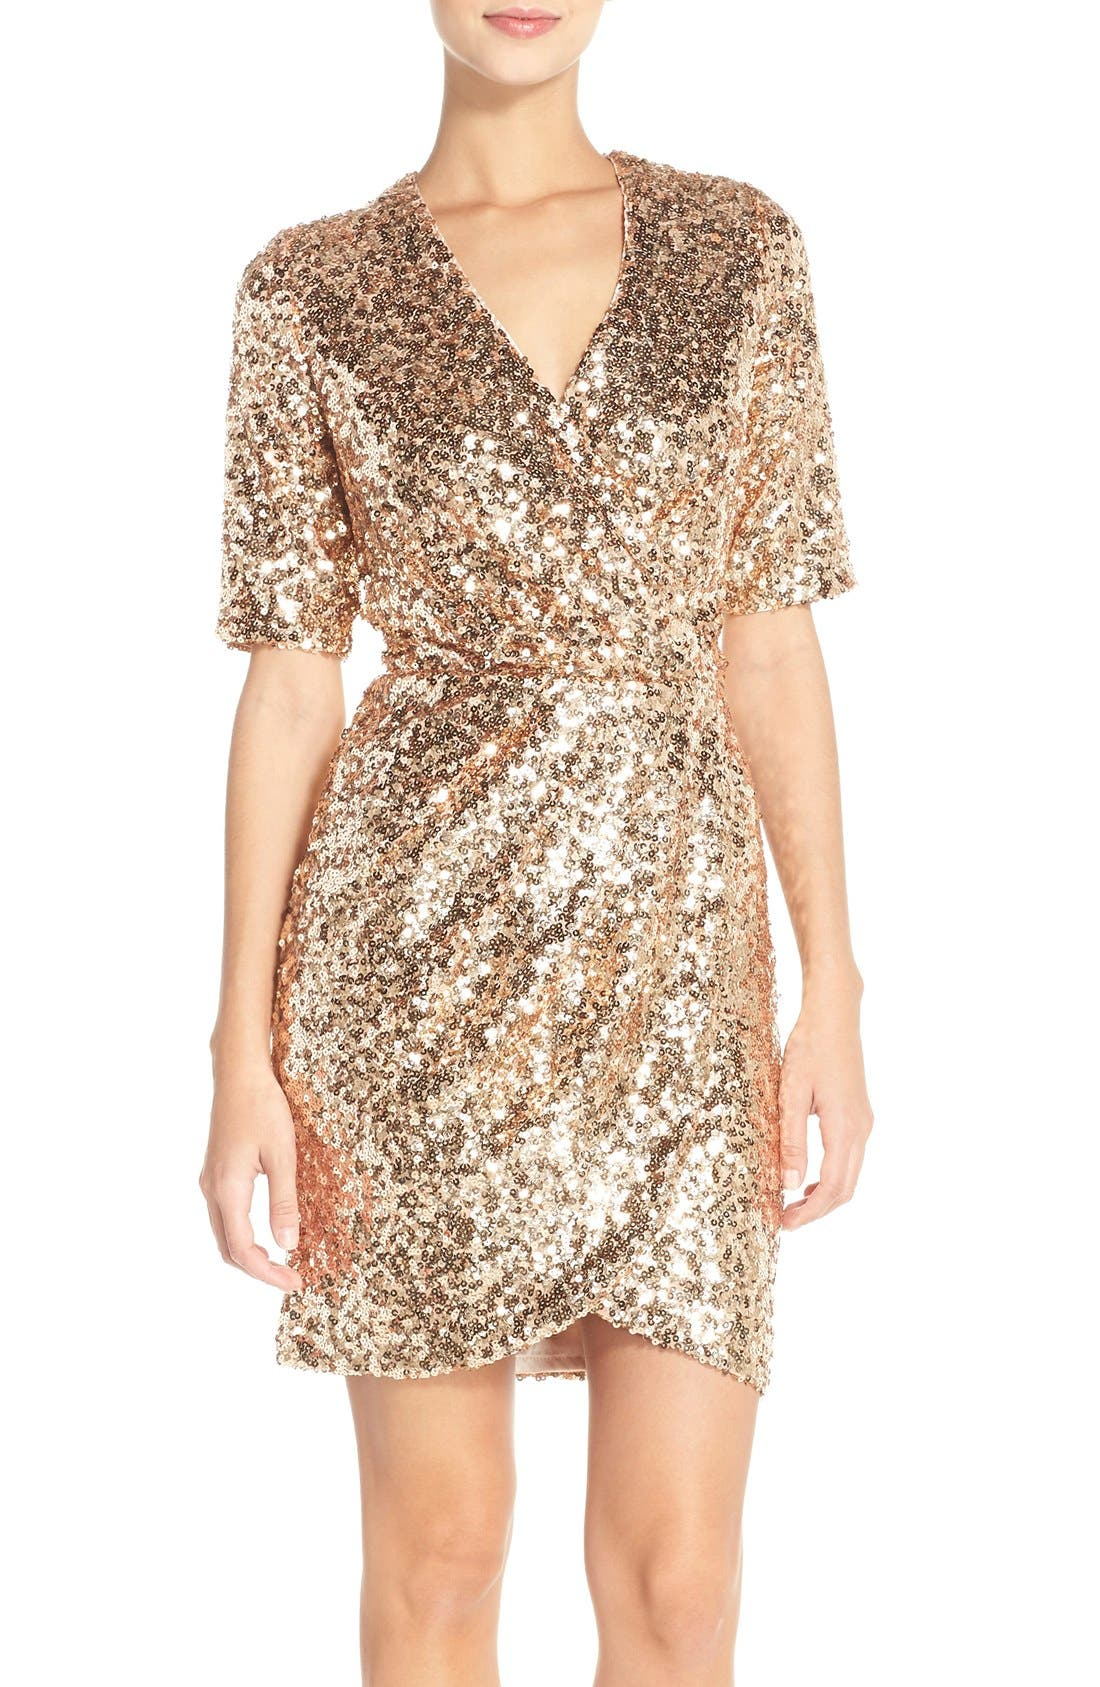 Alternate Image 1 Selected - French Connection Sequin Mesh Faux Wrap Dress